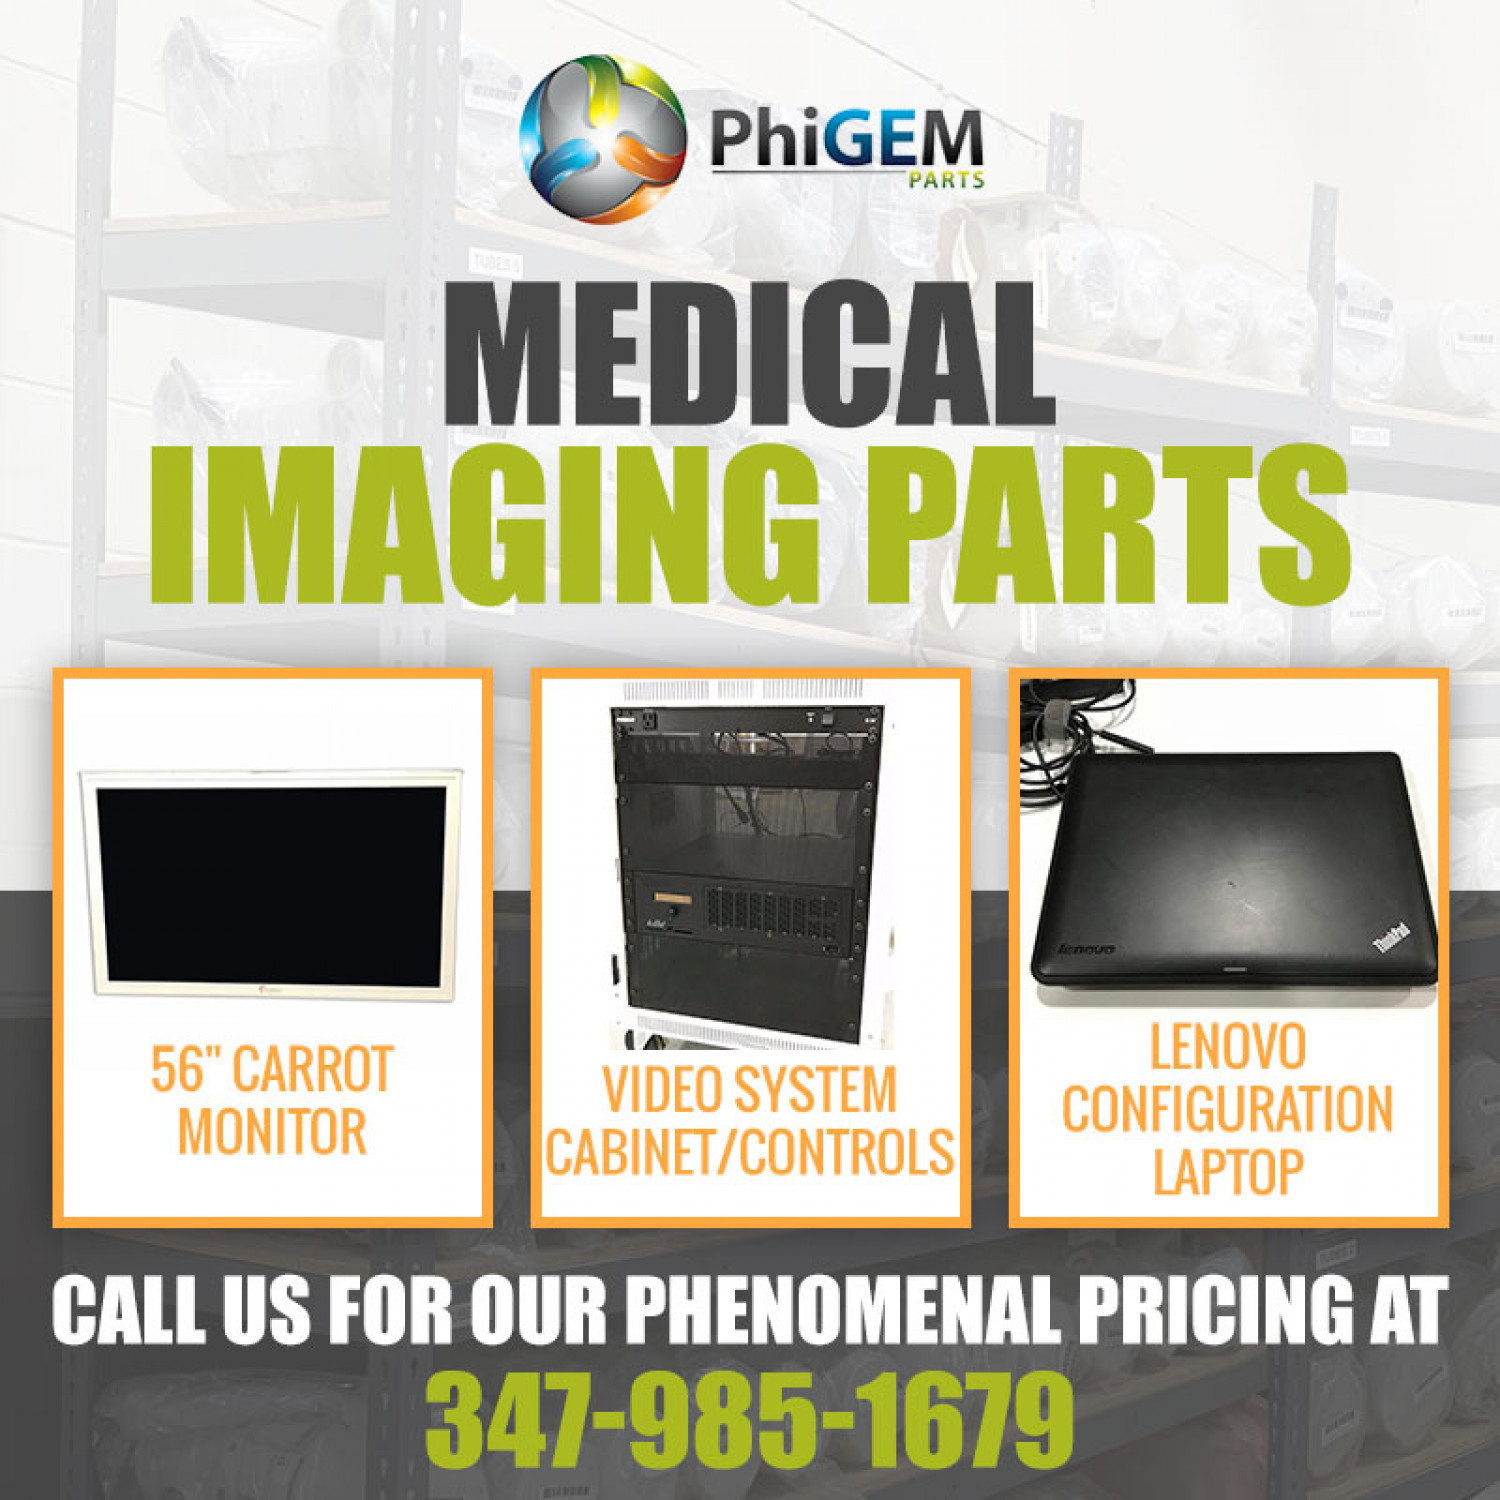 Medical Imaging Parts Infographic